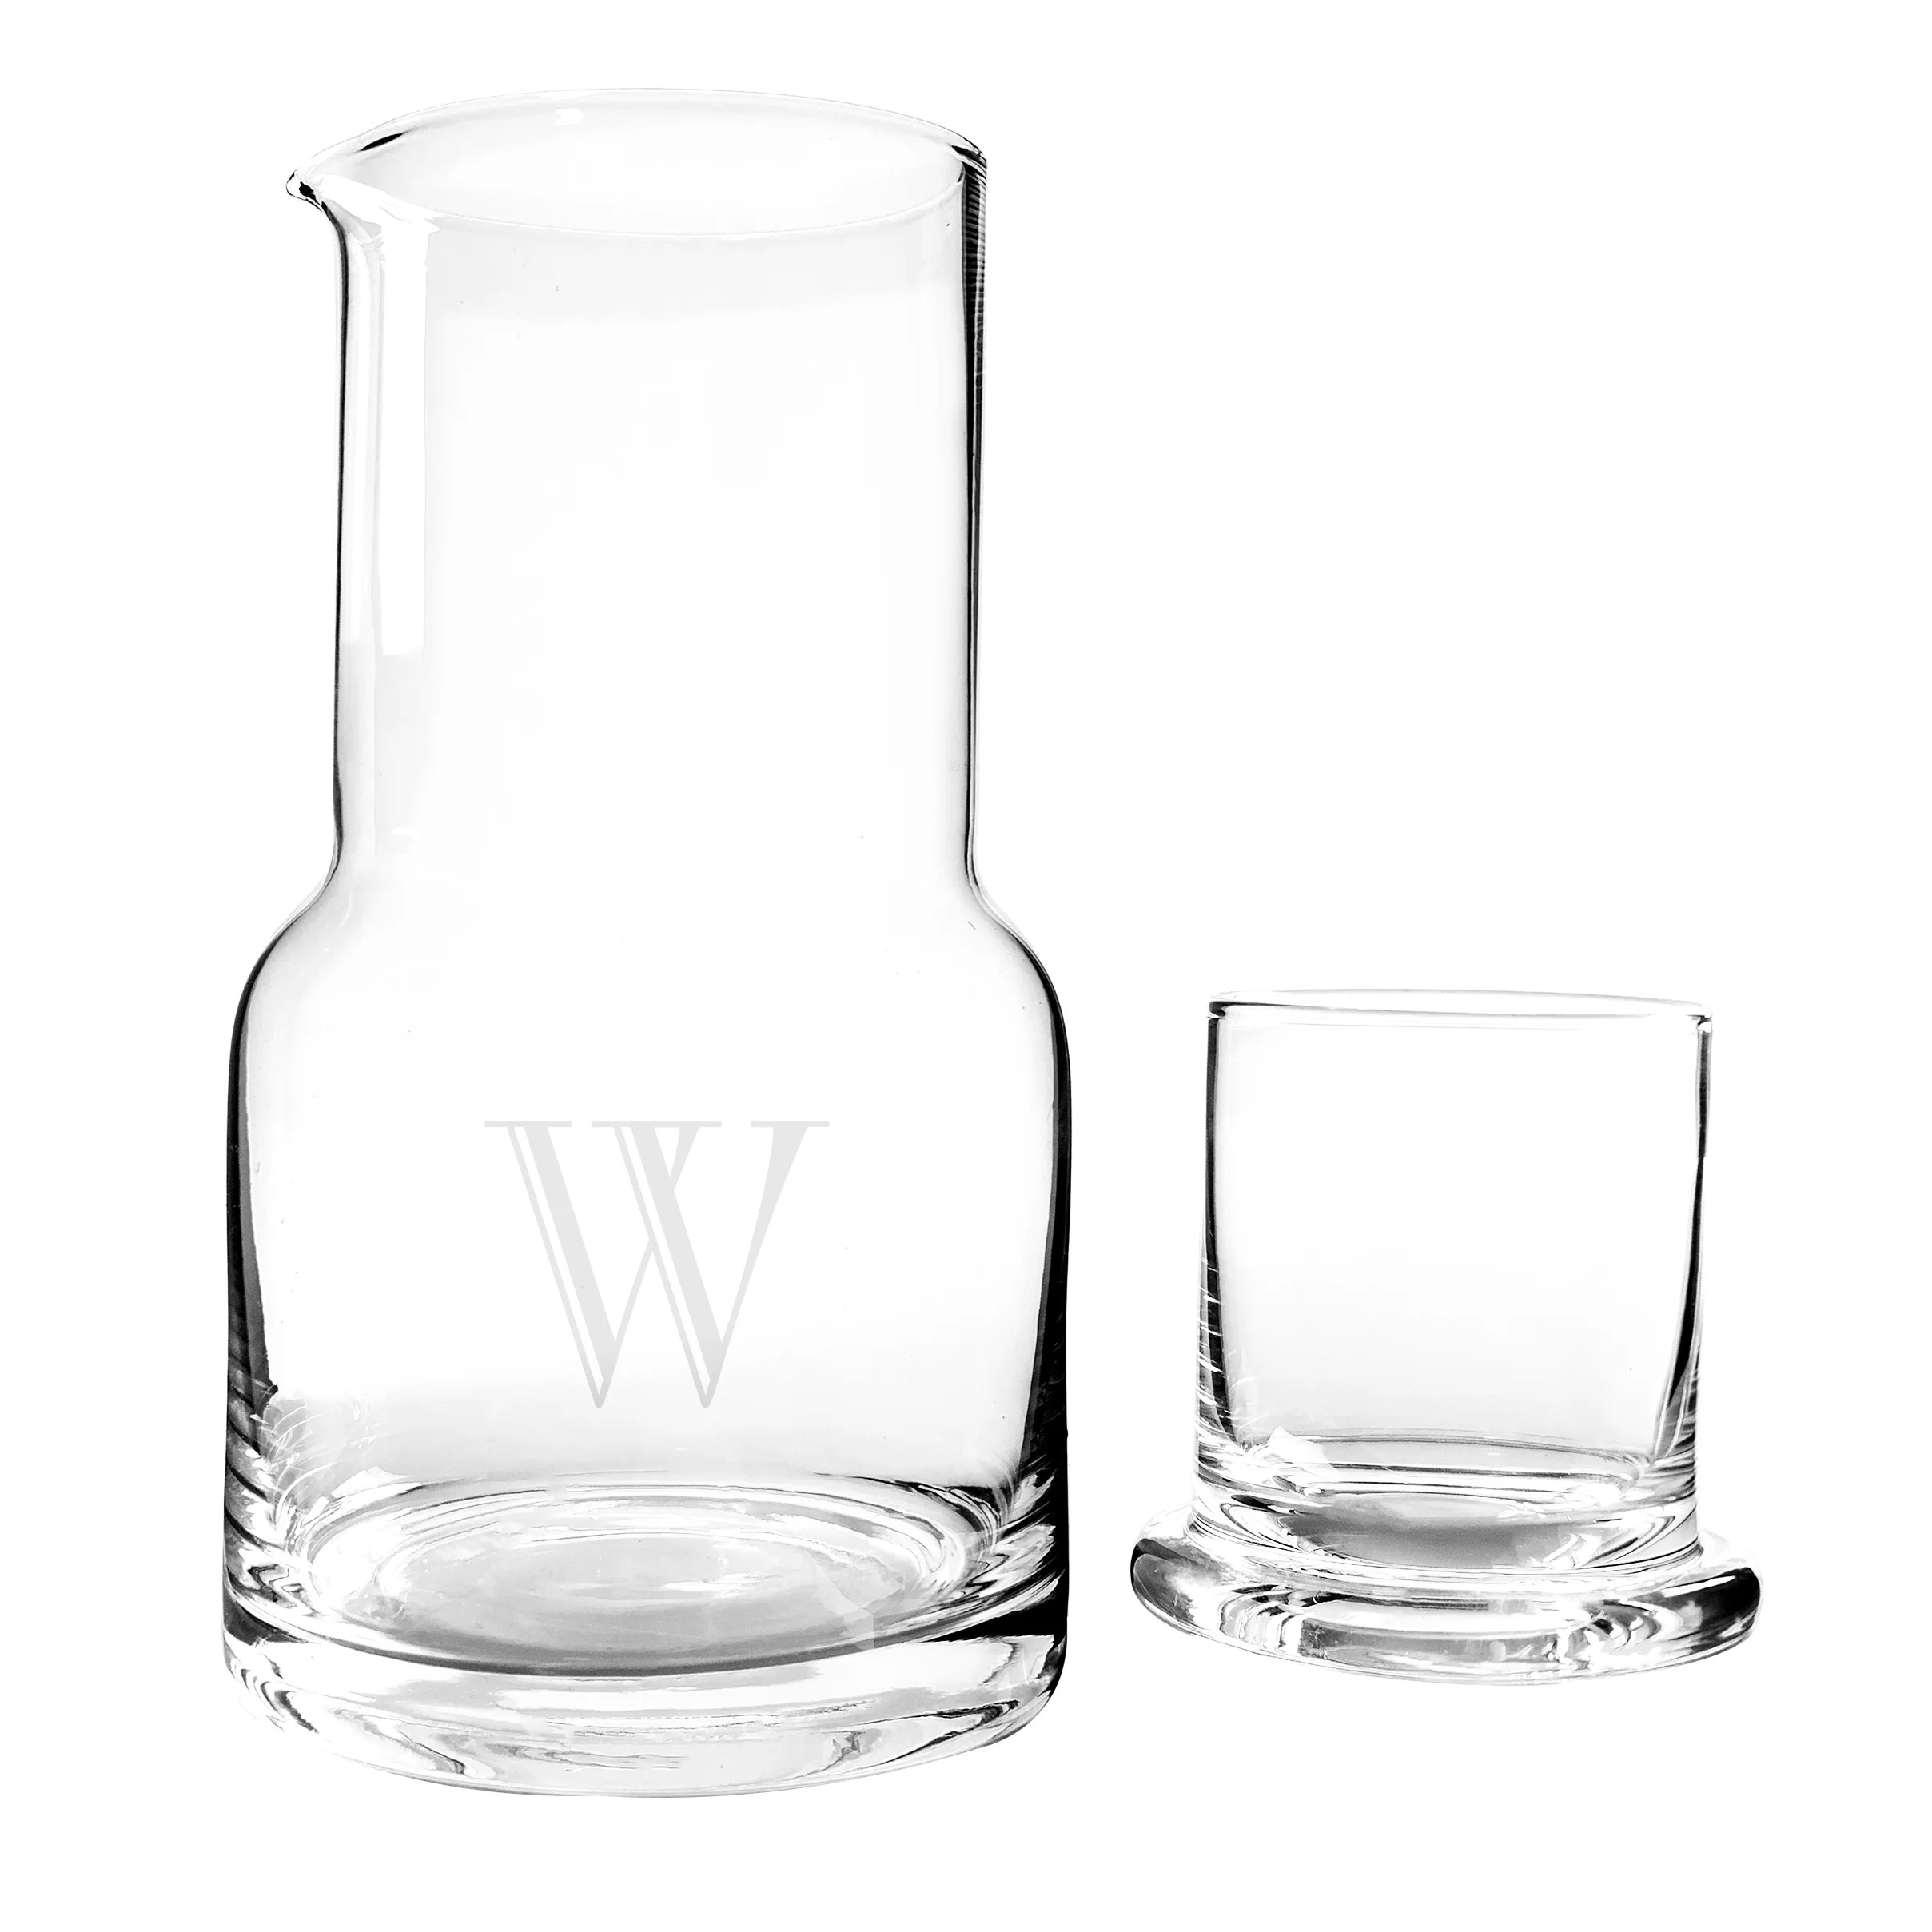 Bedside Water Carafe And Glass Cathys Concepts 2 Piece Personalized Bedside Water Carafe